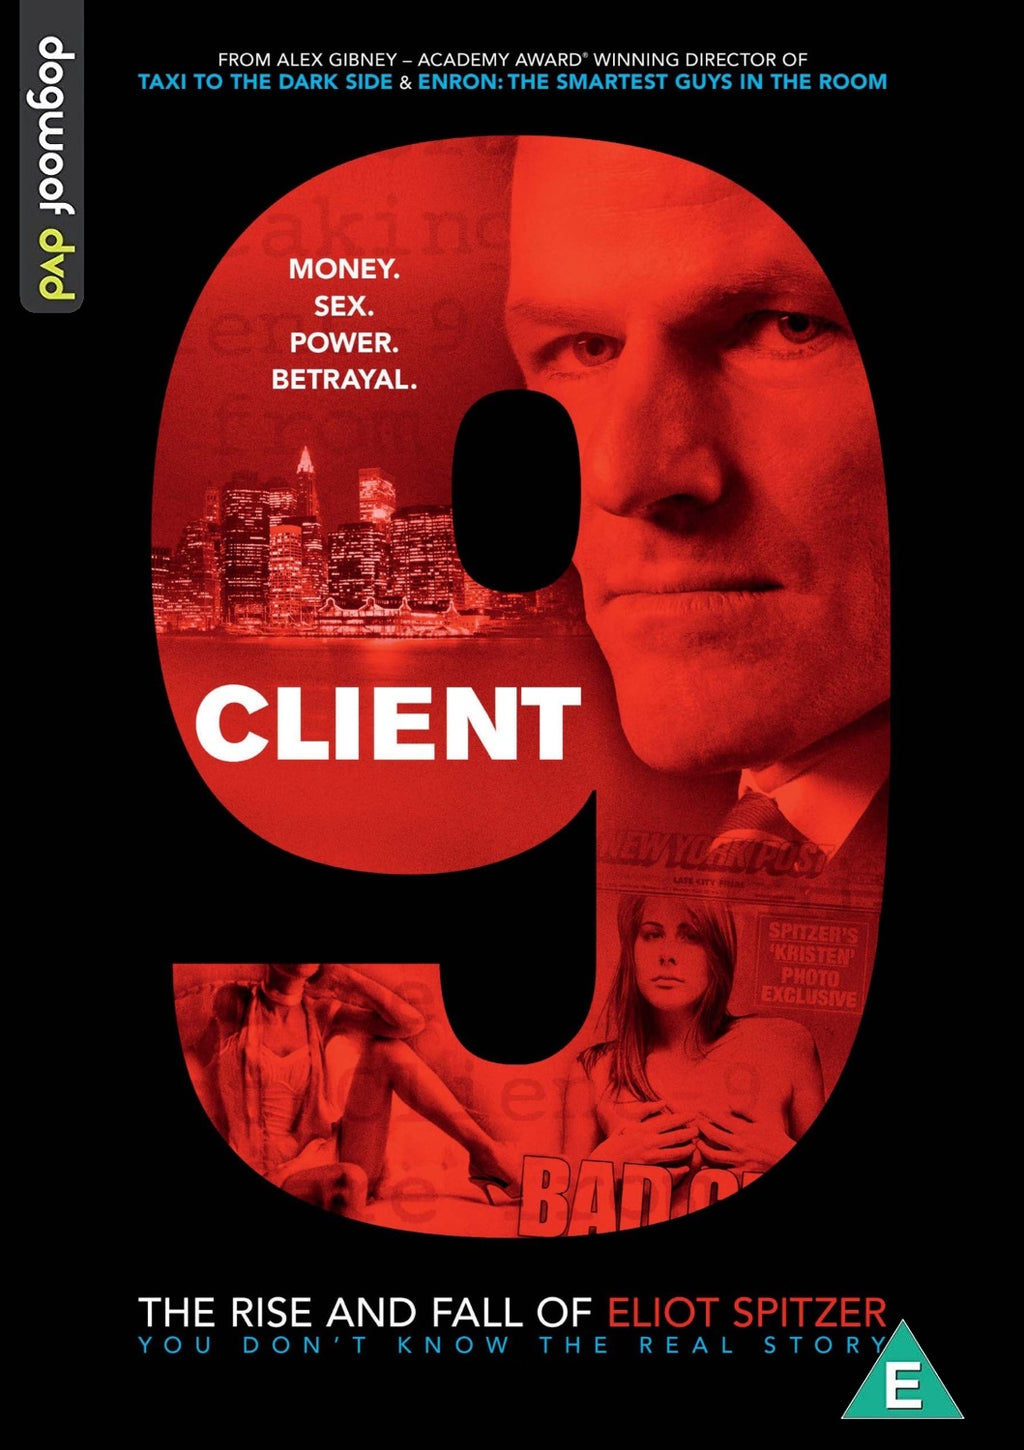 Client 9: The Rise and Fall of Eliot Spitzer DVD